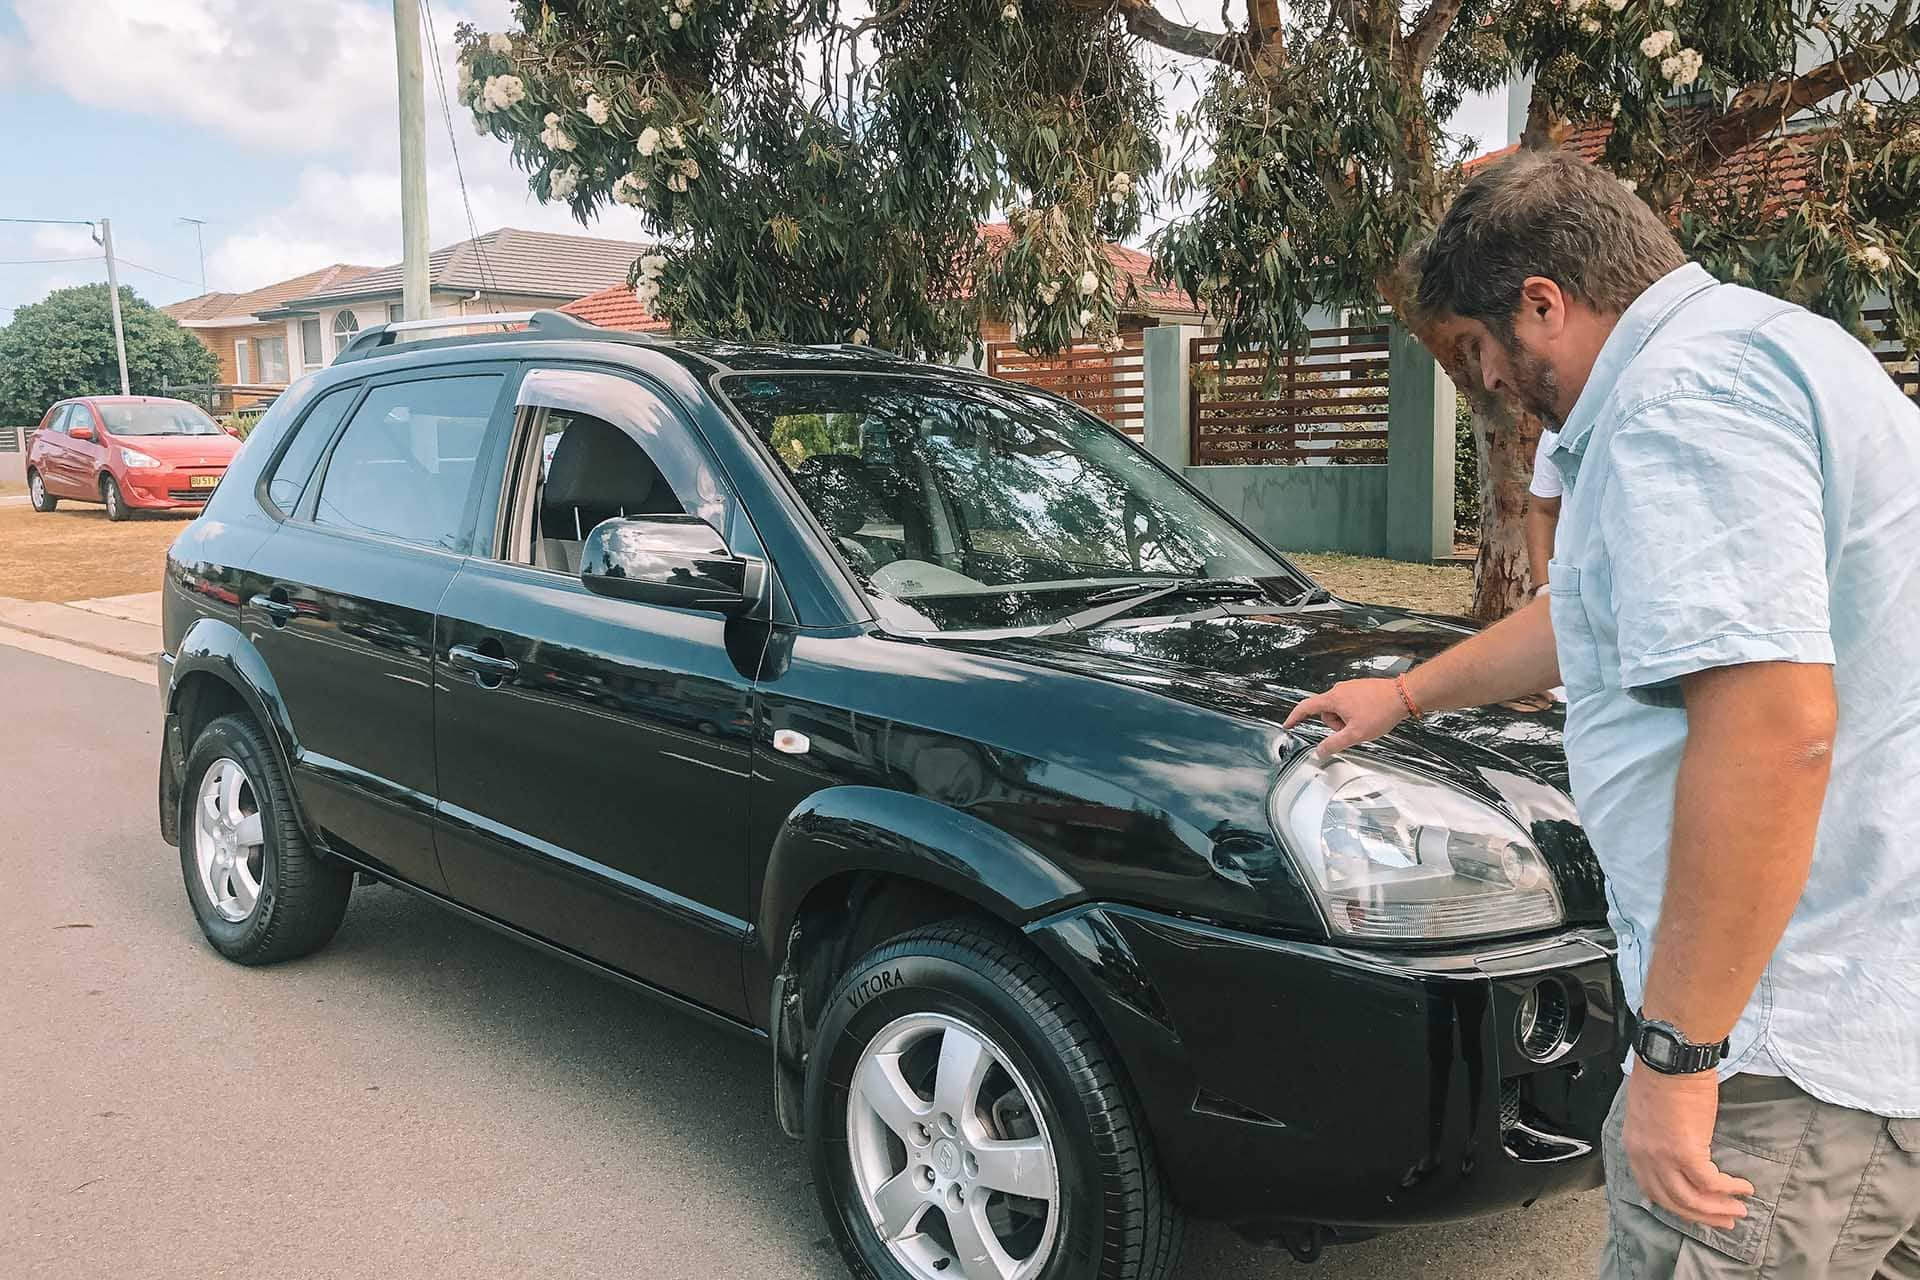 20 Tips For Buying Second Hand Cars In Sydney (or anywhere in Australia)